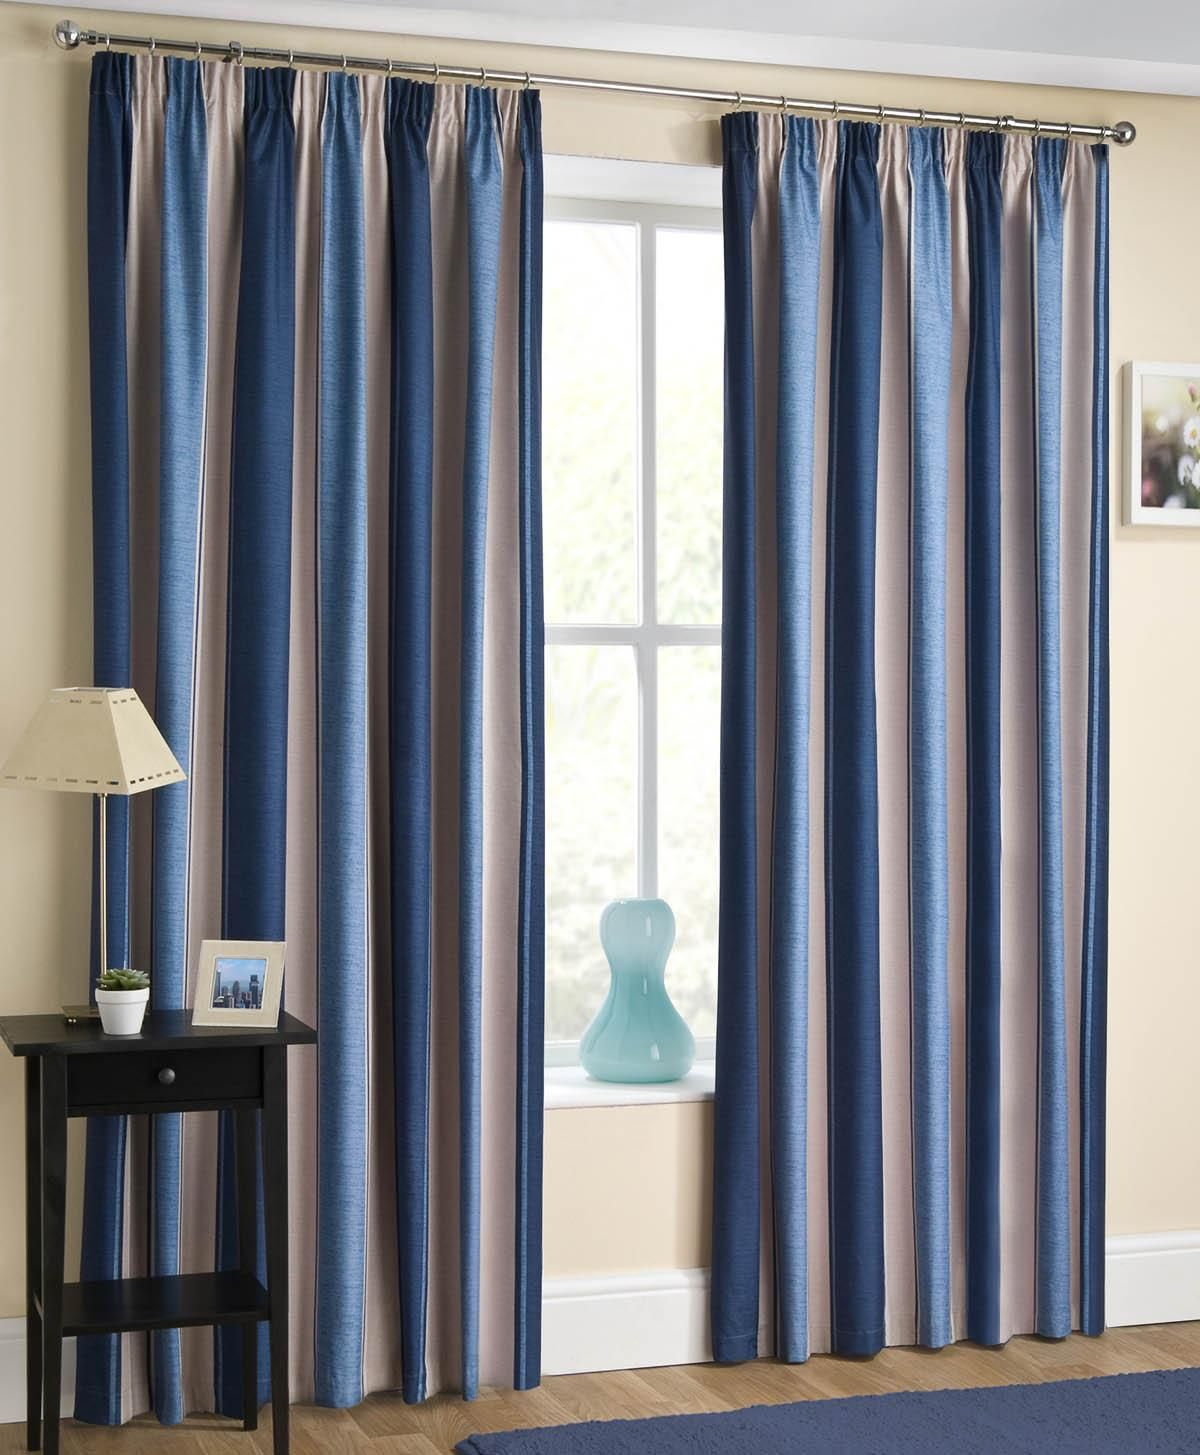 grommet curtains amazon thermal dp solid top blue nicetown blackout com all navy curtain insulated draperies season